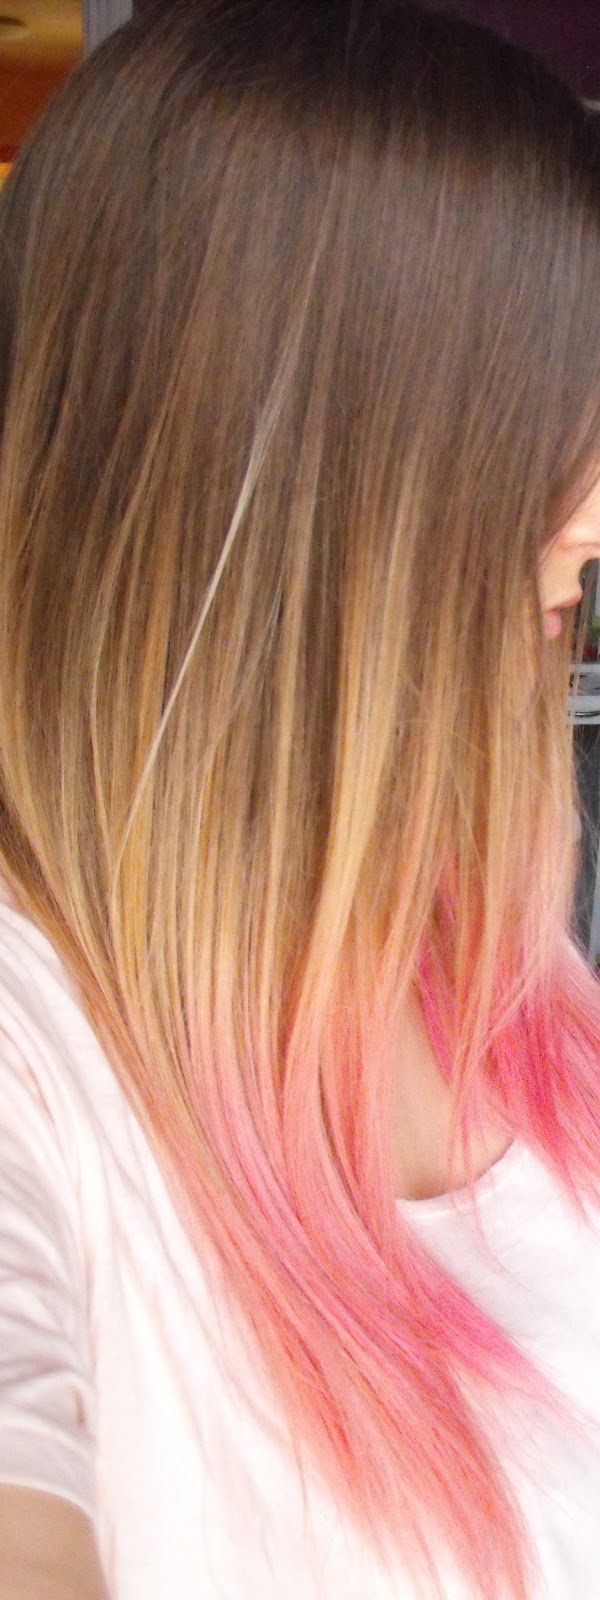 Degrade couleur pointe cheveux